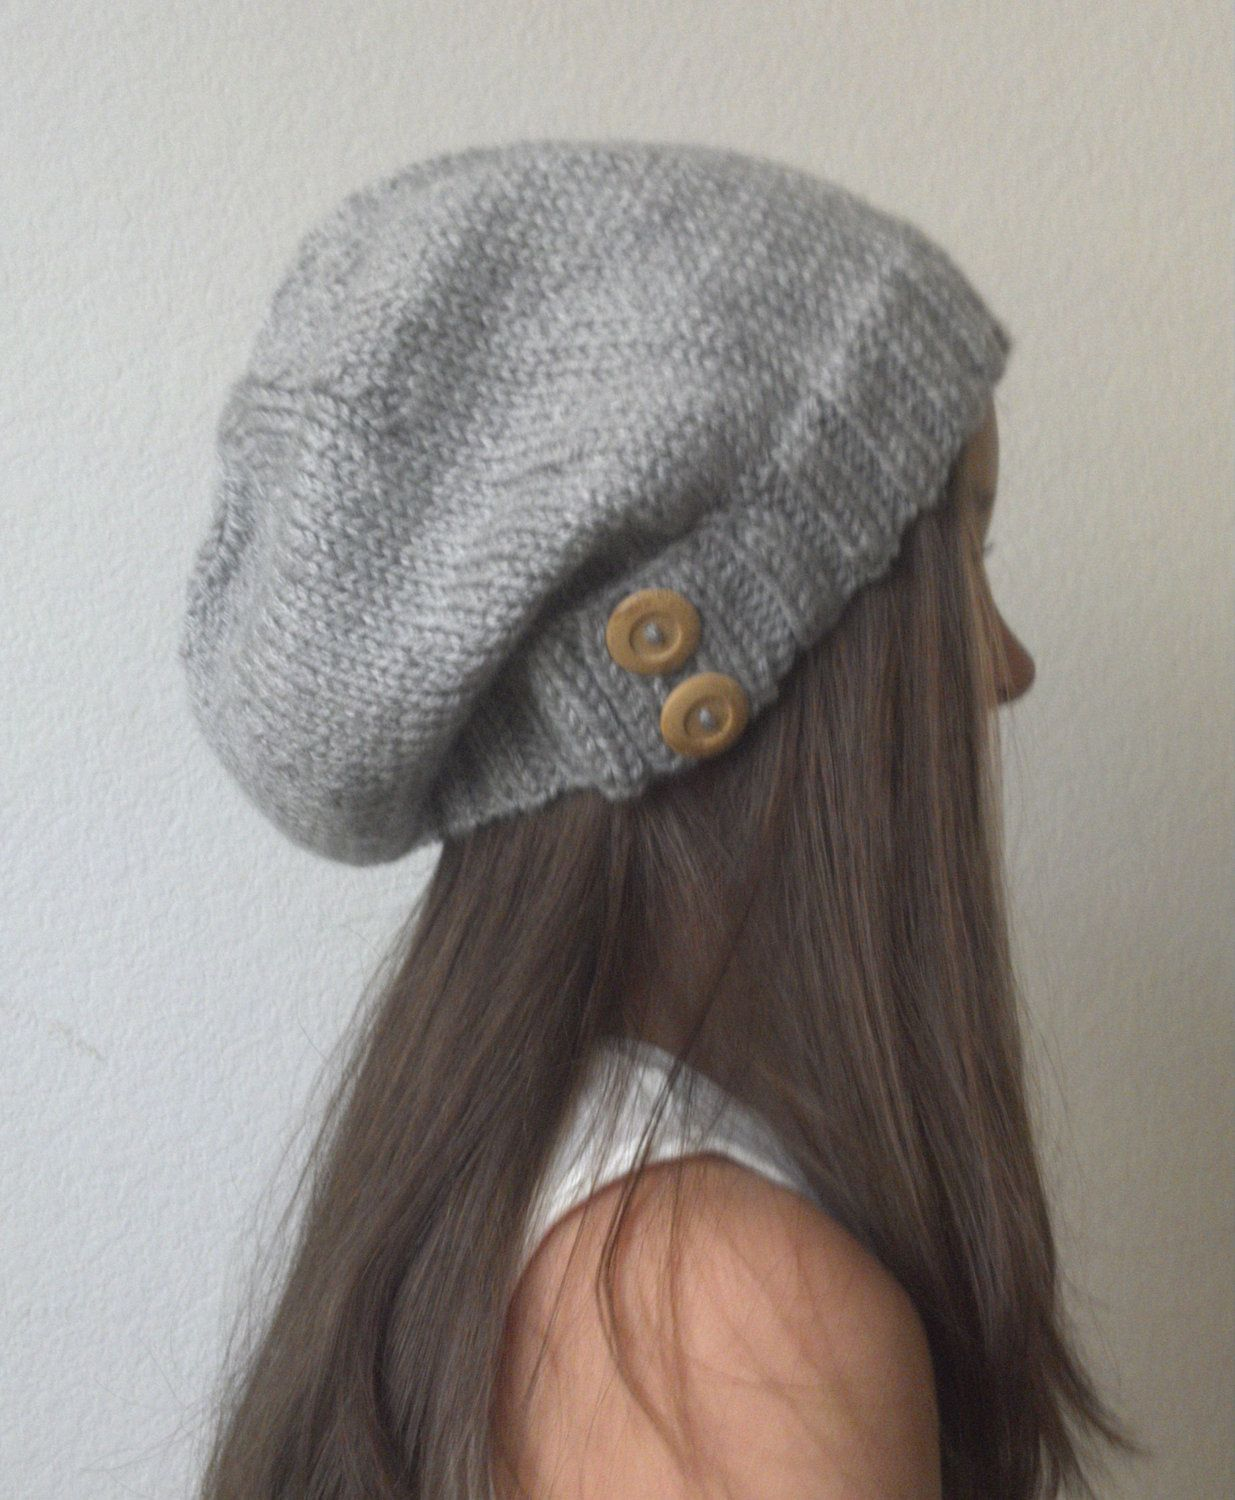 bc3be09e6fe Knit slouchy hat - HEATHER GRAY ready to ship - (more colors available -  made